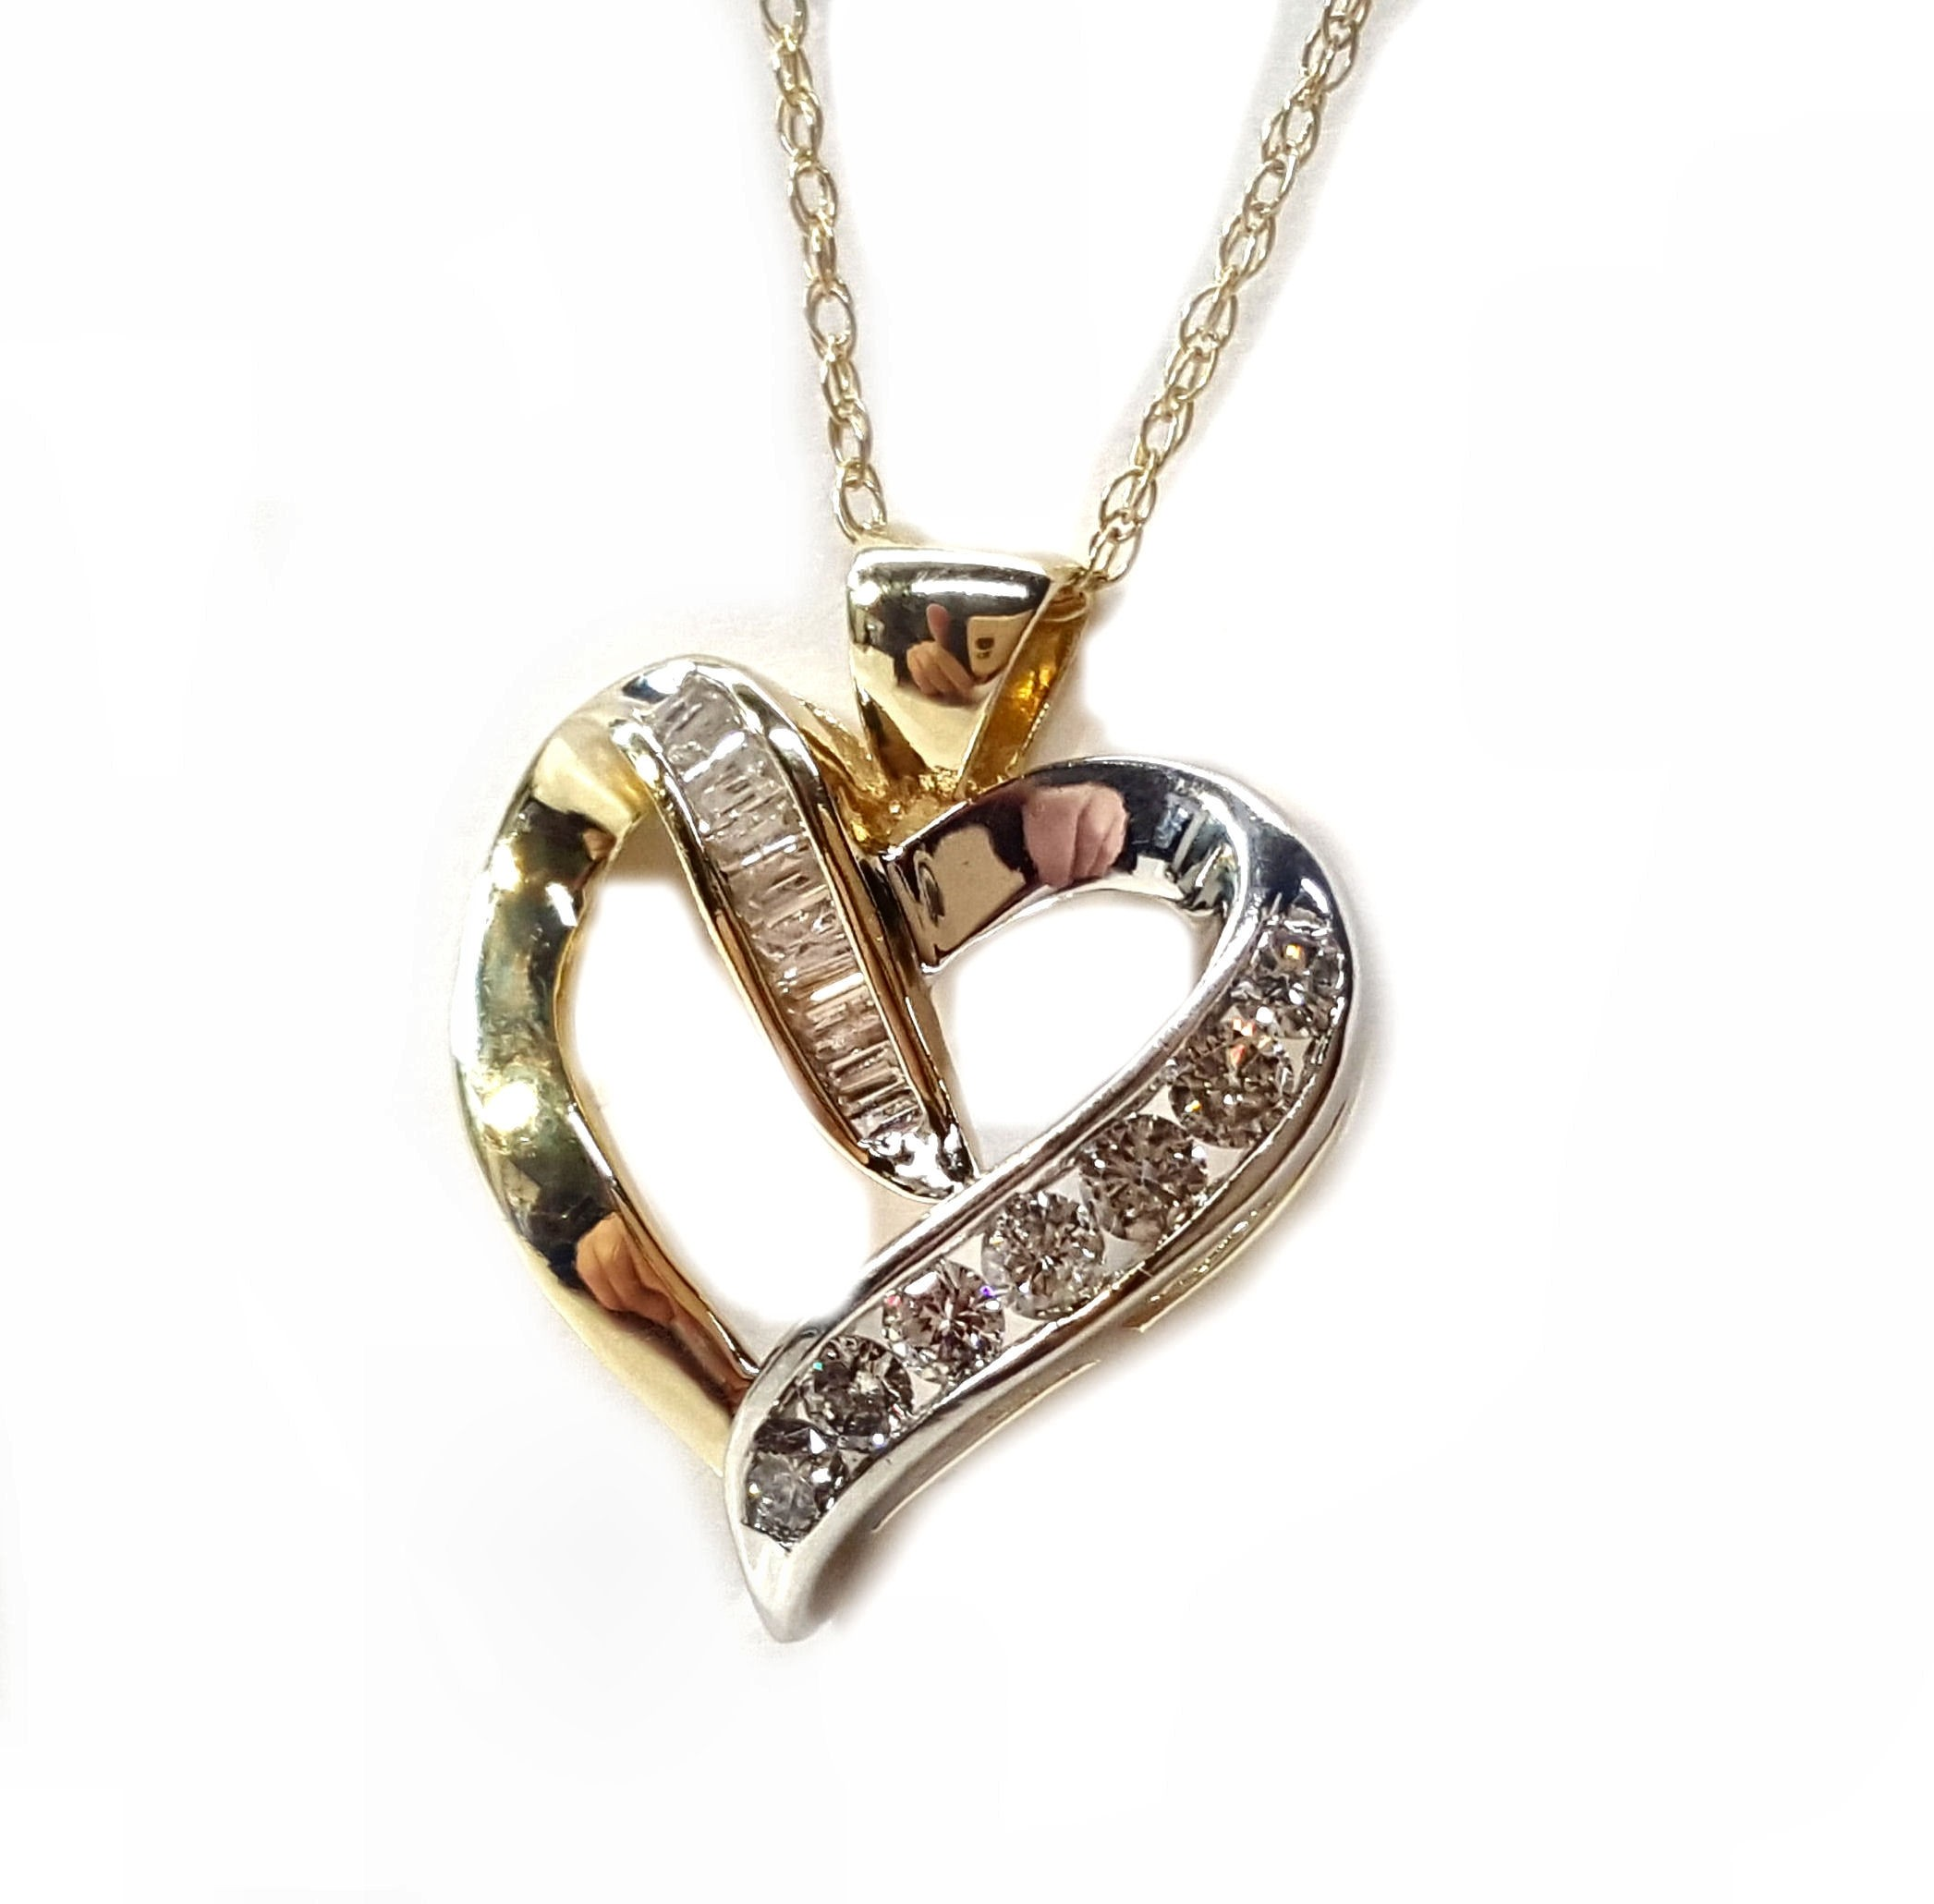 Heart Pendant with Baguettes/Round Diamonds Set in 10kt Gold